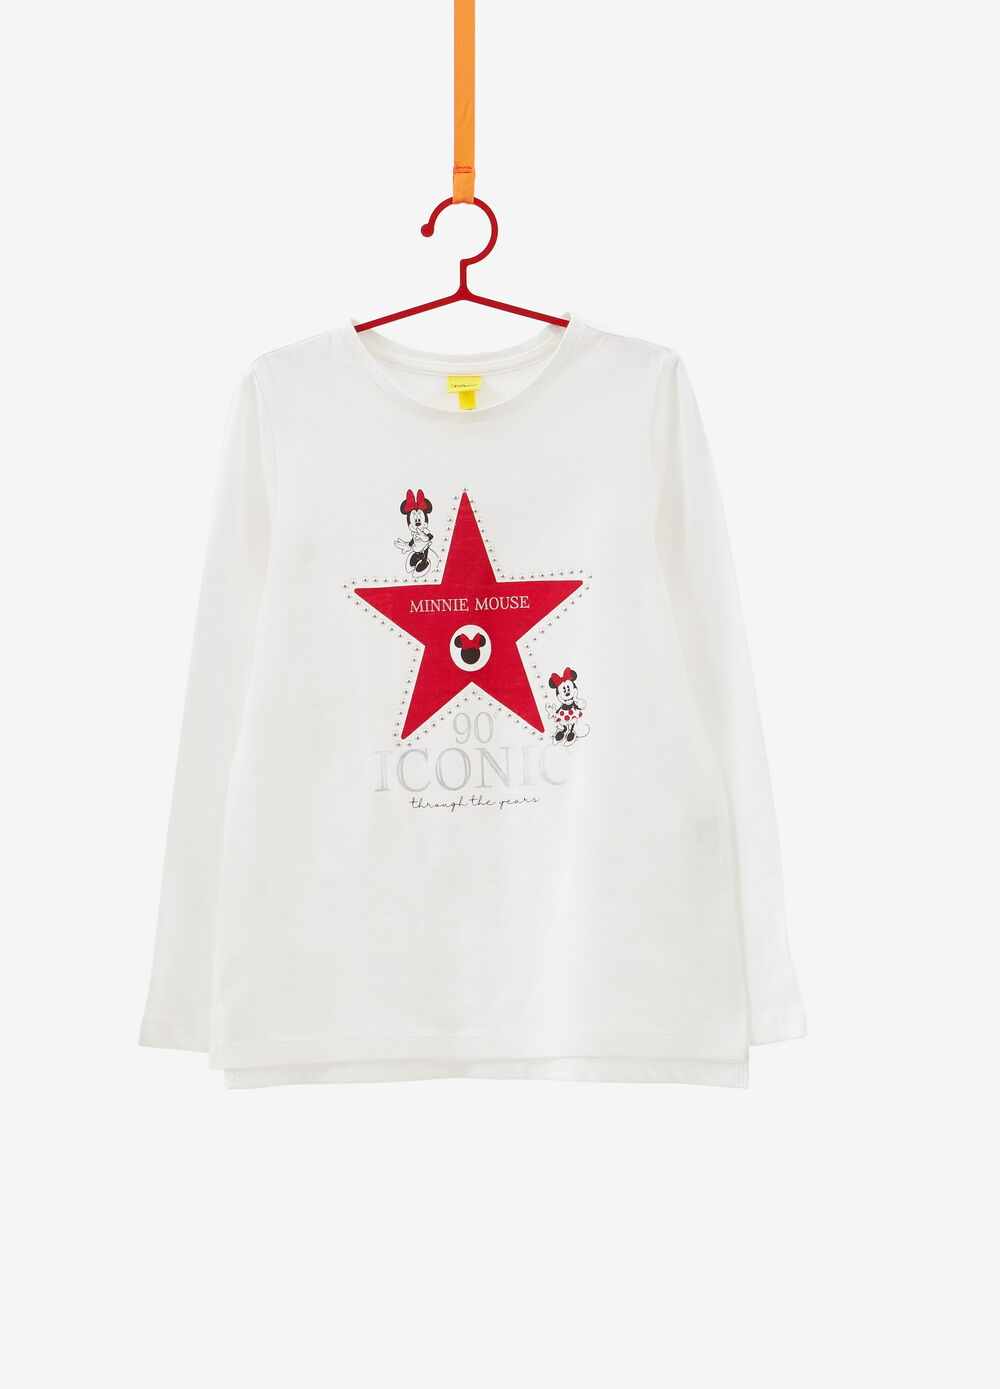 100% cotton Minnie Mouse T-shirt with studs